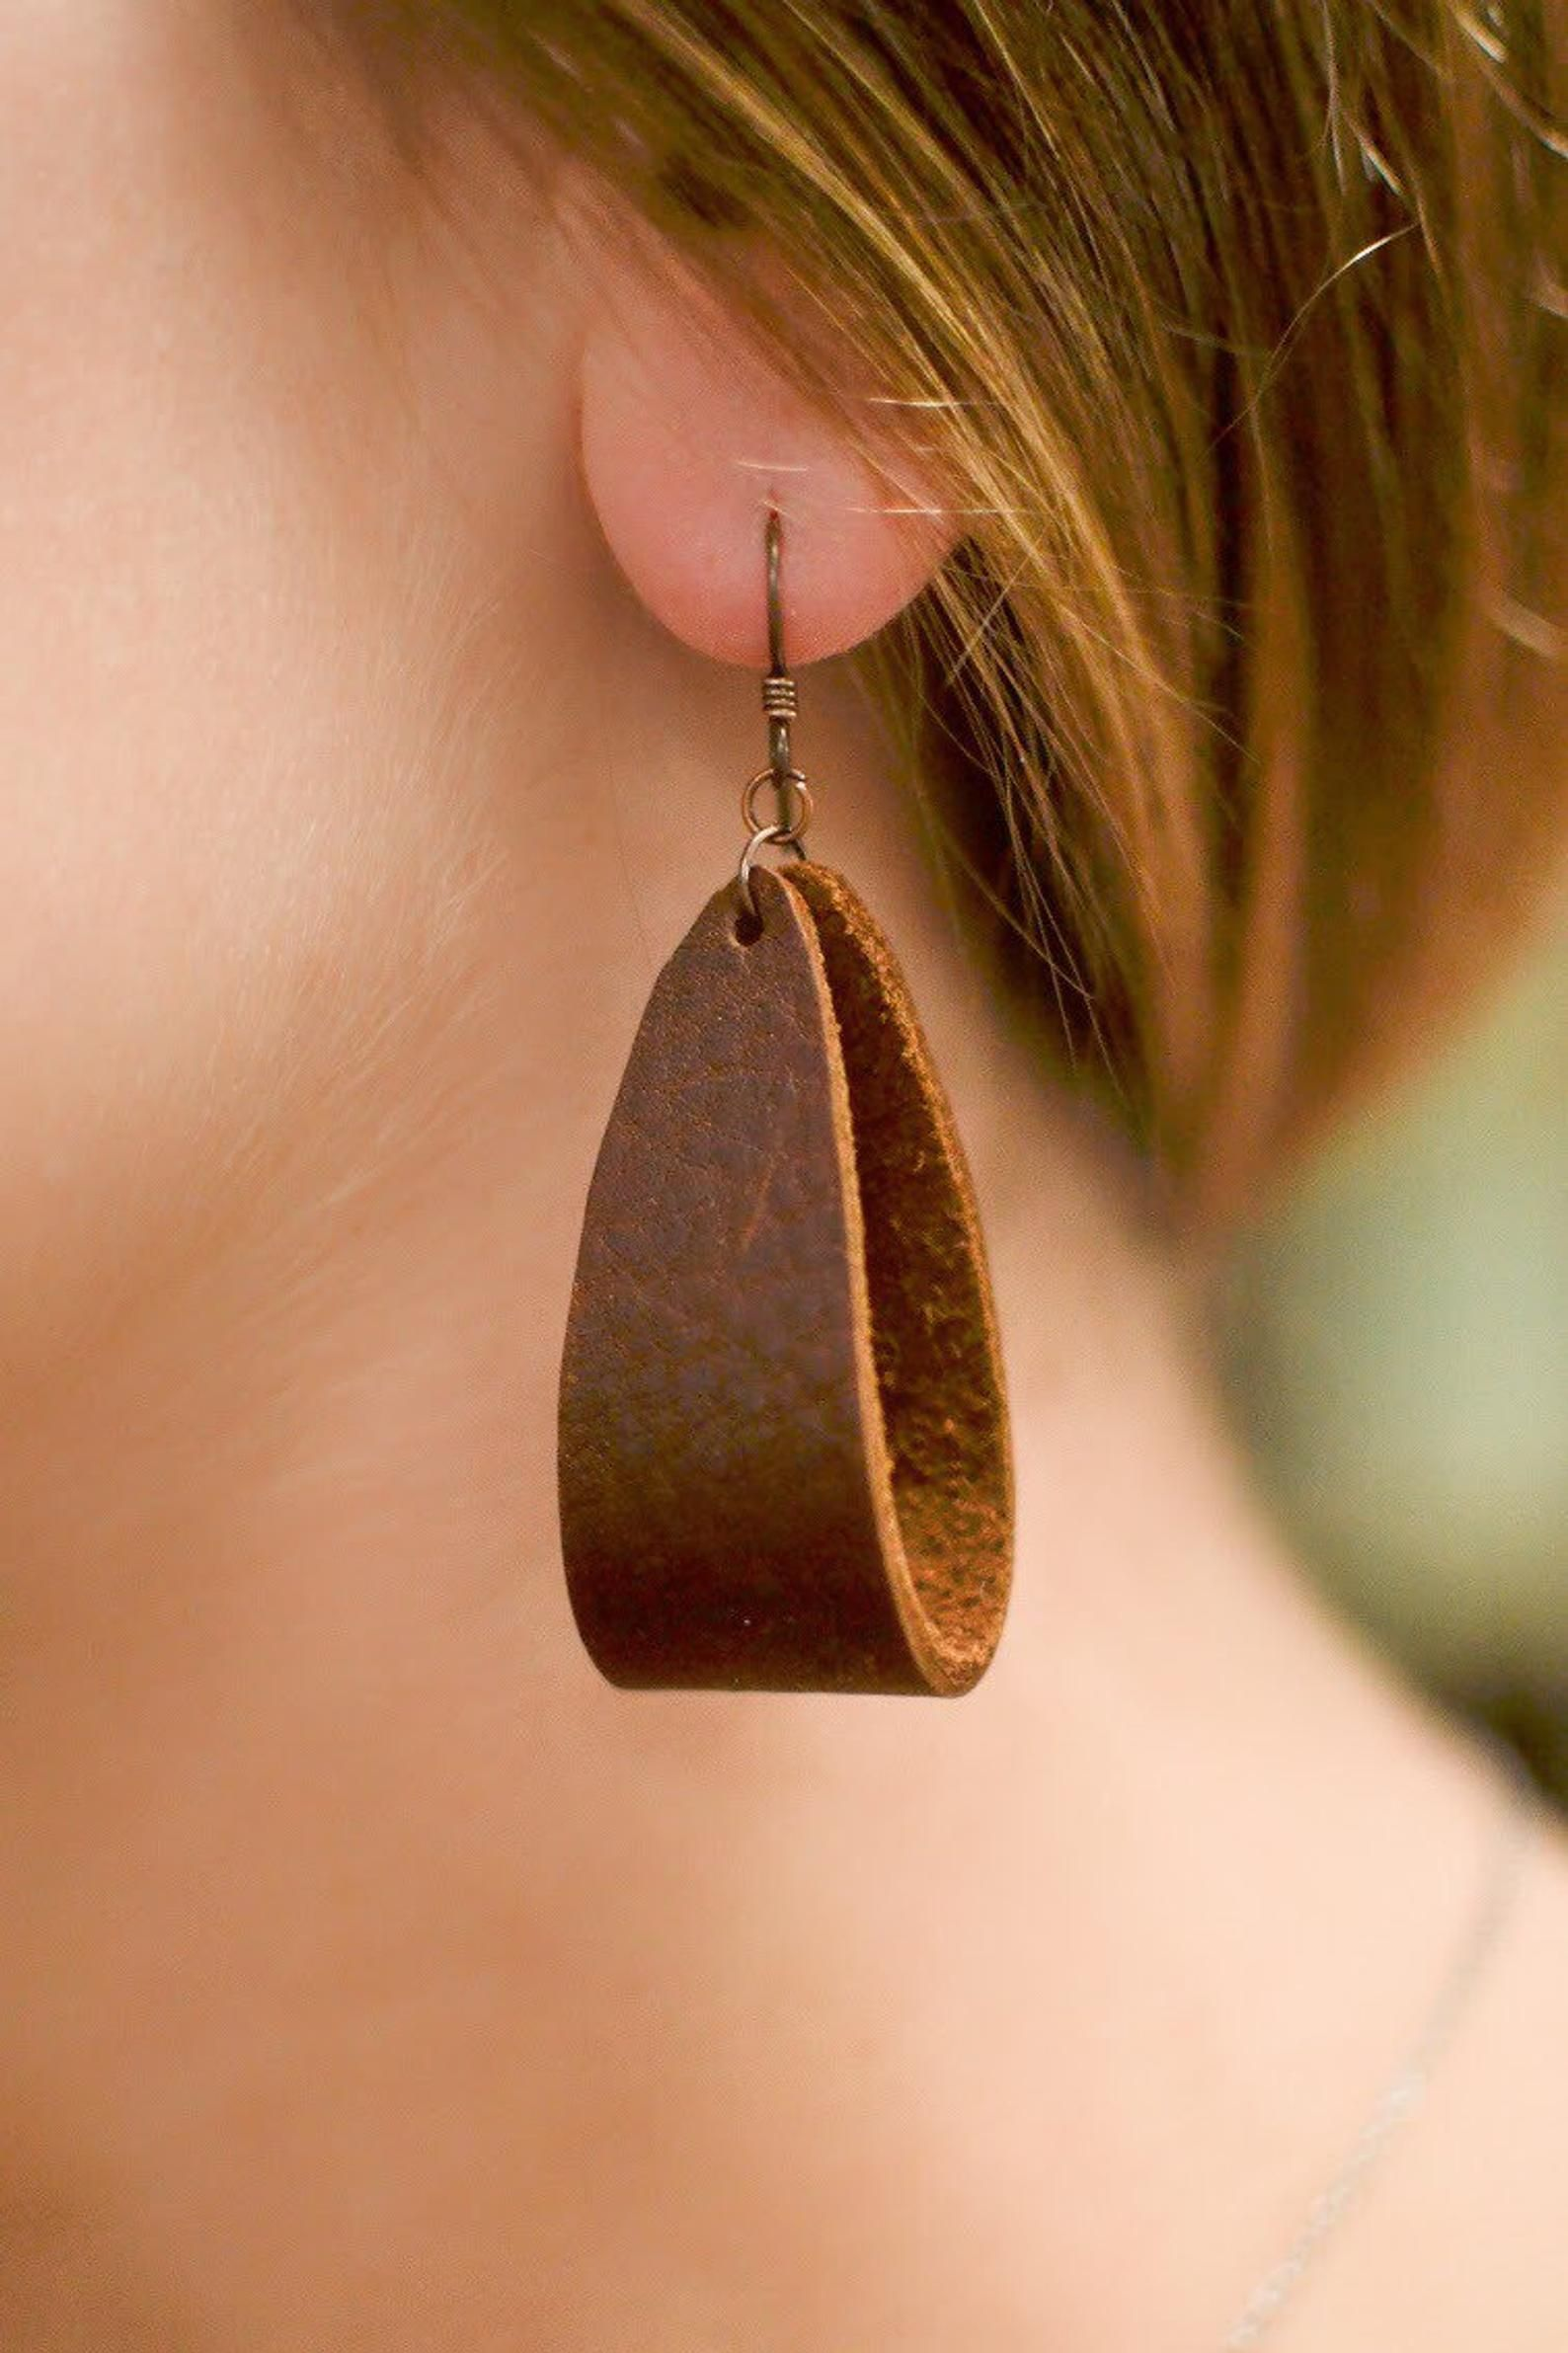 earrings jewelry crafts Sea green suede leather pieces